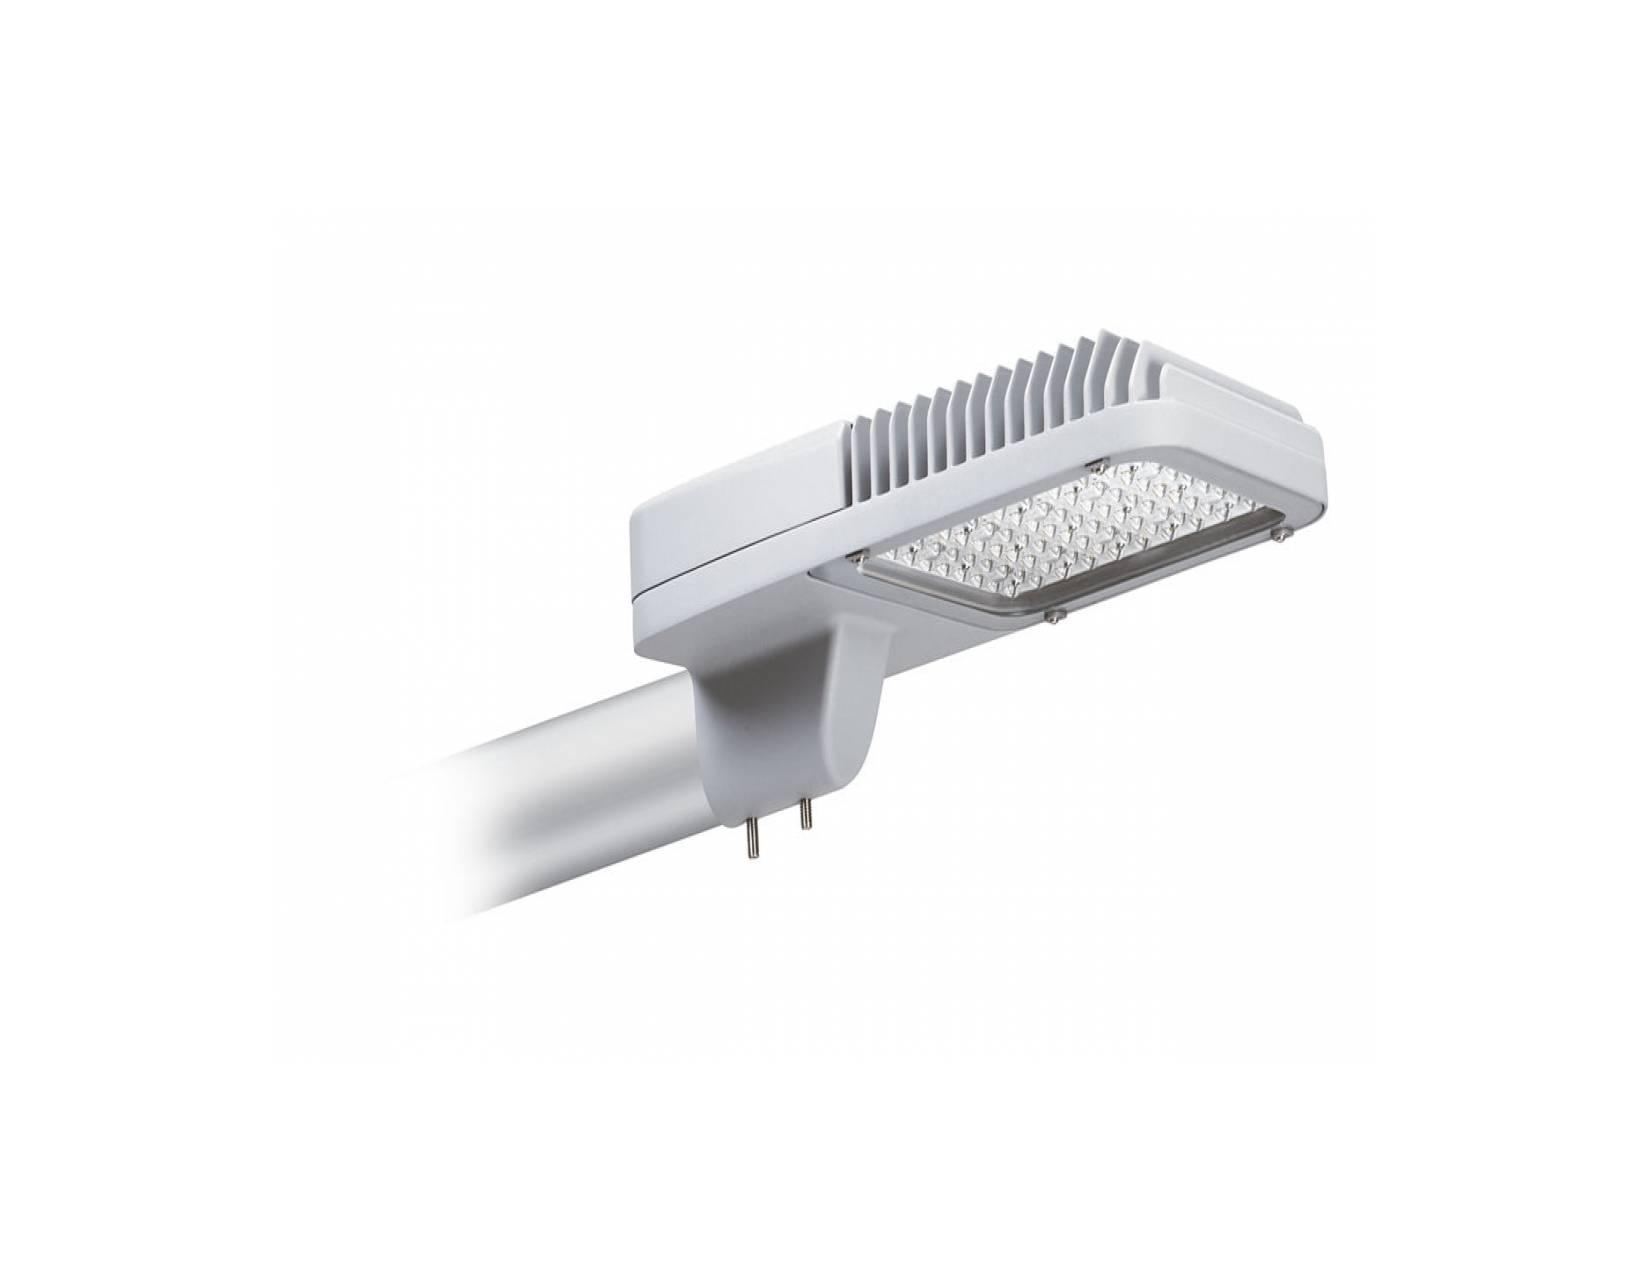 PHILIPS BRP372 LED167/NW 150W 220-240V DM MP1 - Lampu Jalan LED